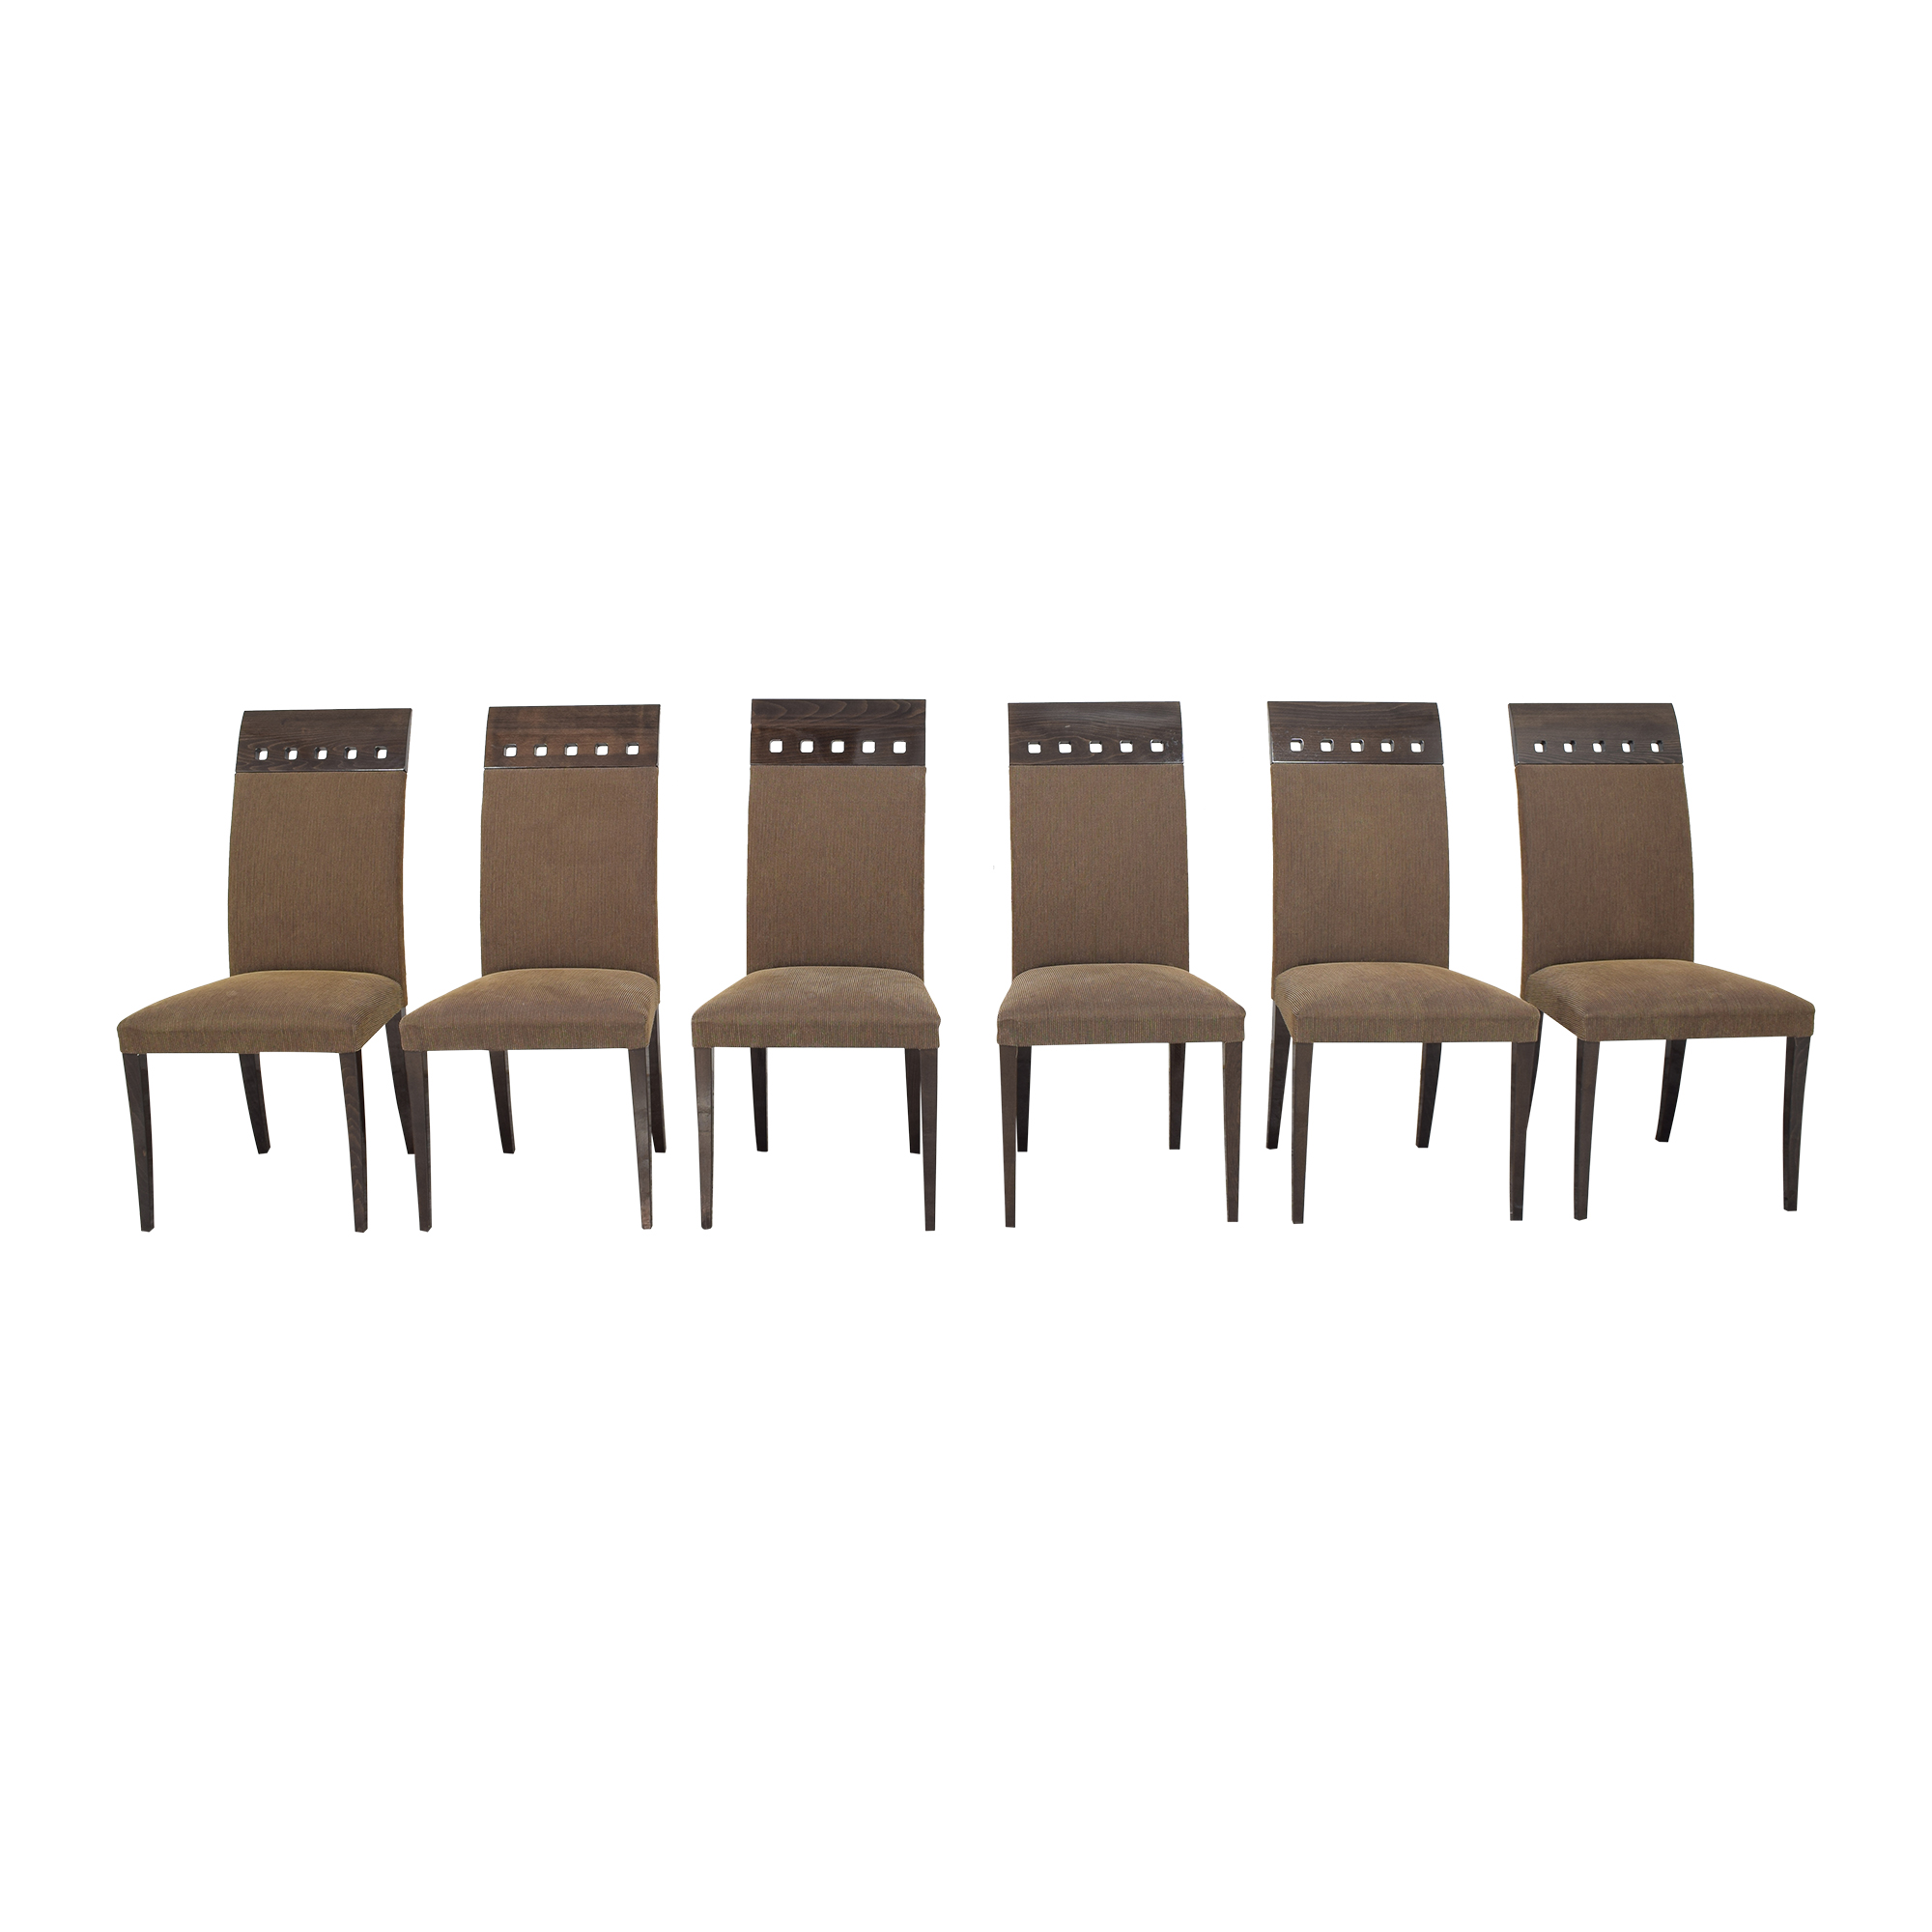 Pietro Costantini Waldorf Dining Side Chairs / Chairs